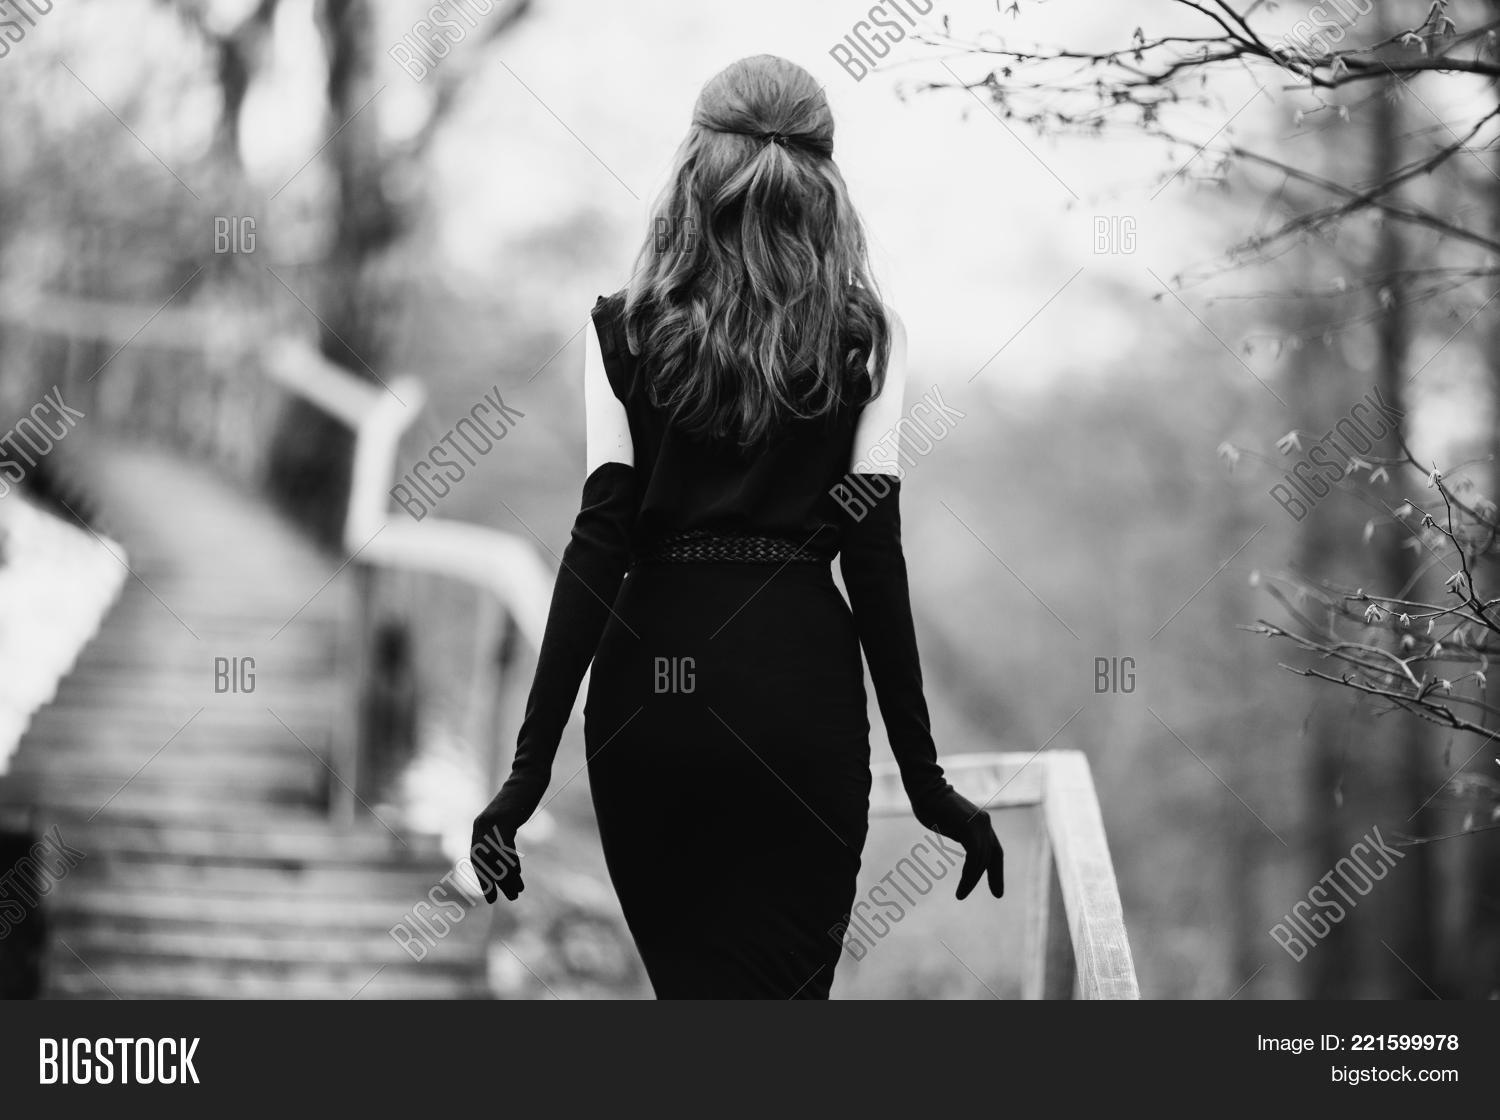 Black and white art monochrome photography striking girl with long hair in black clothes